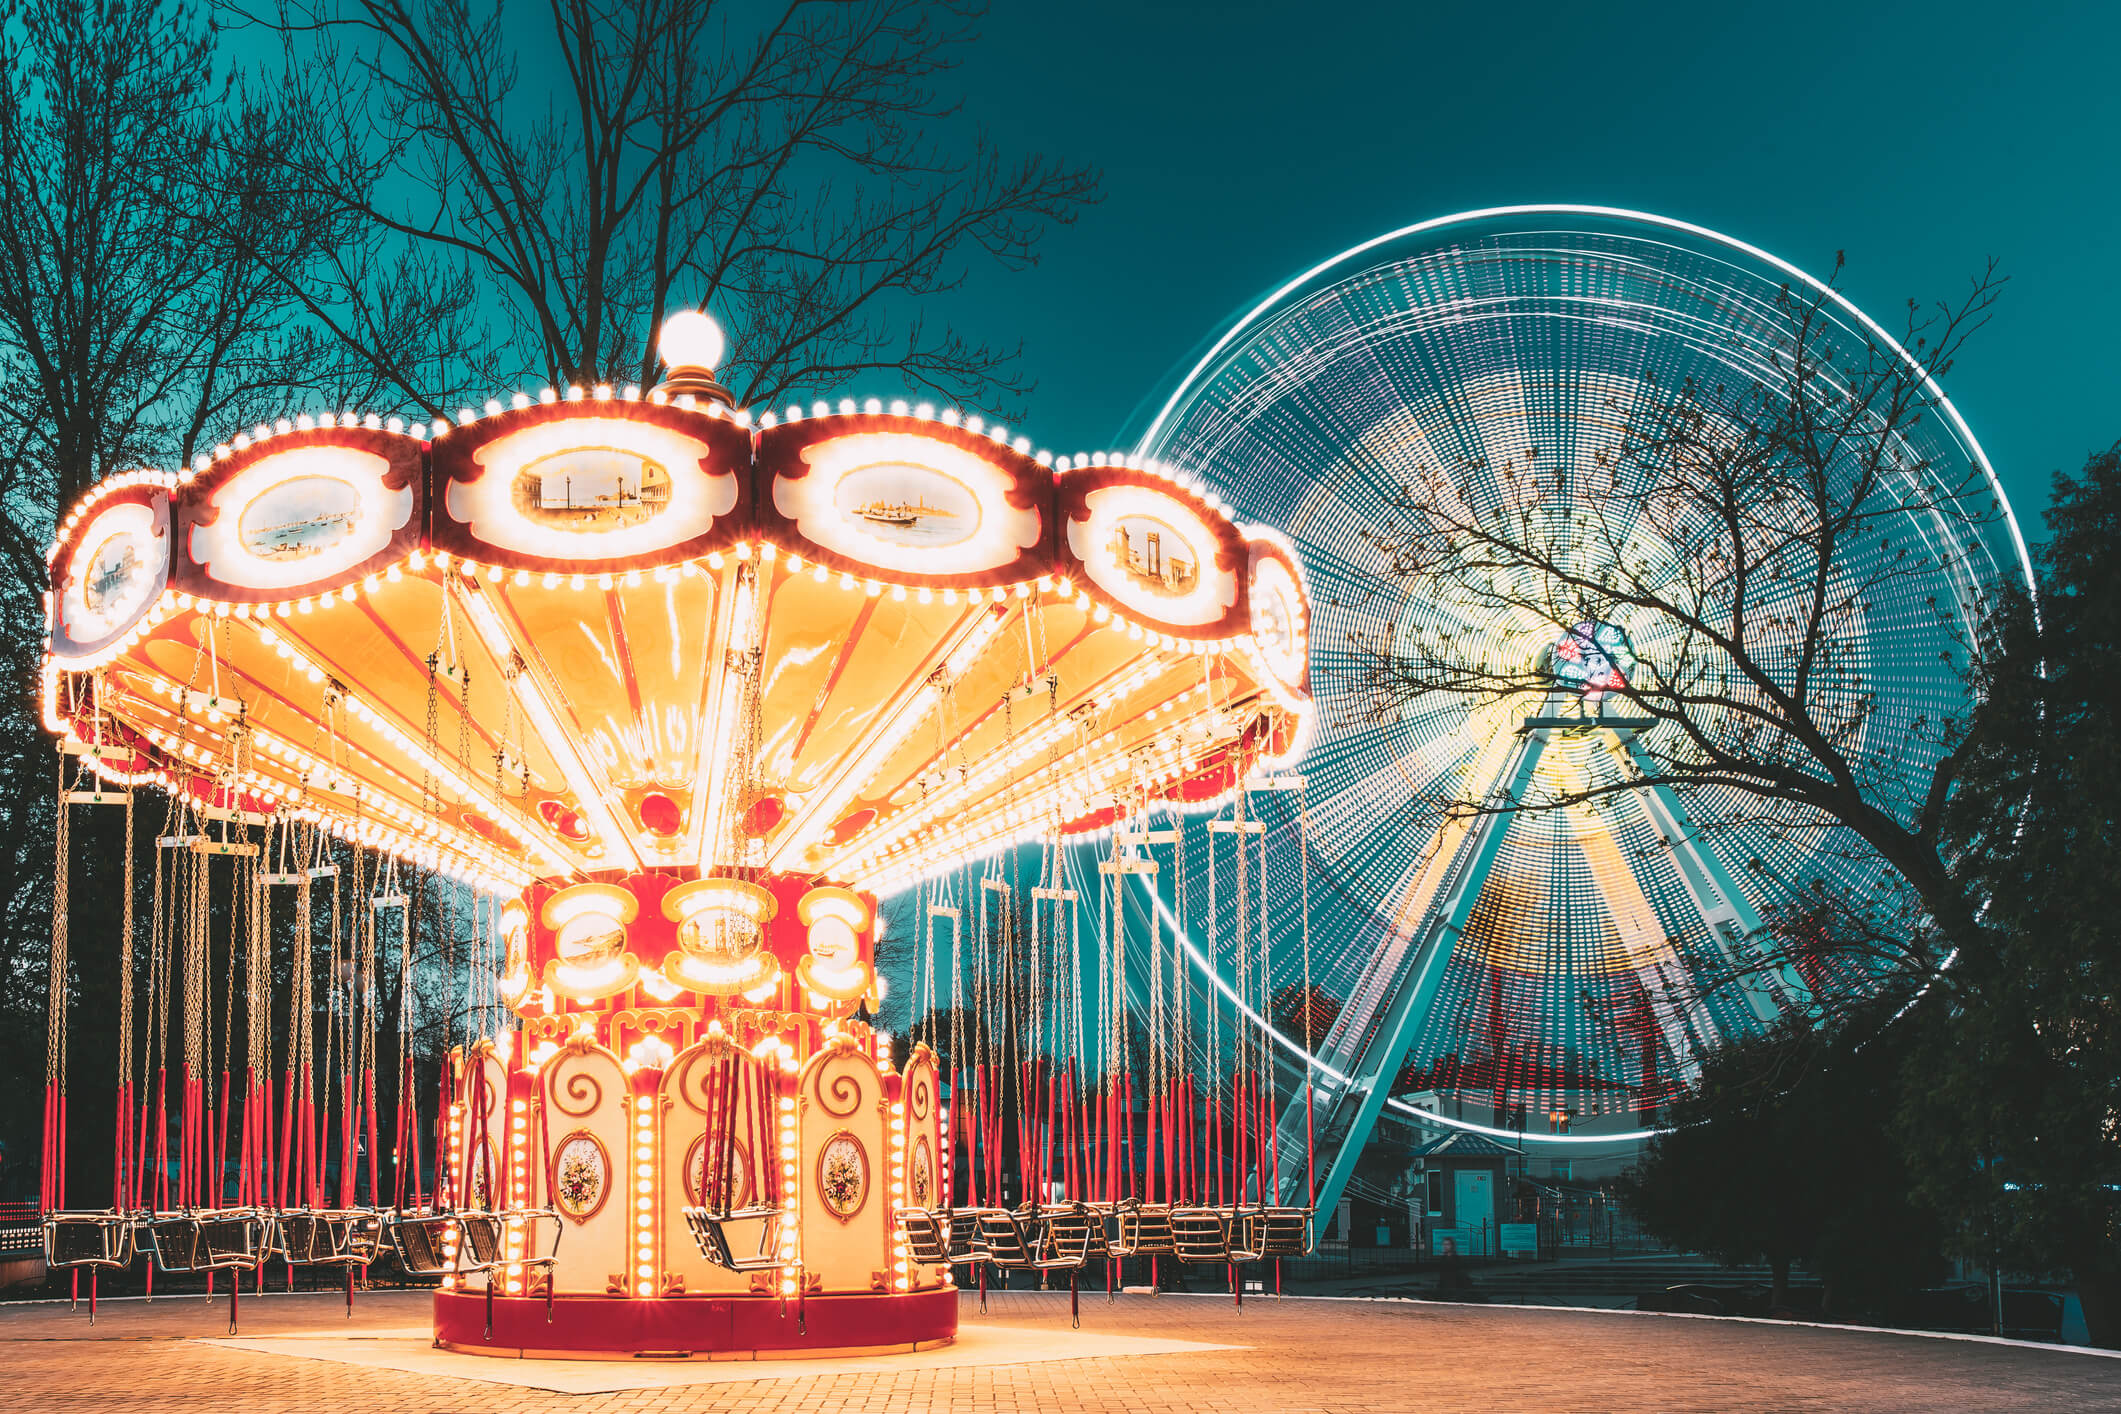 Roeschke Law LLC discusses how theme park disability access passes are sparking lawsuits.